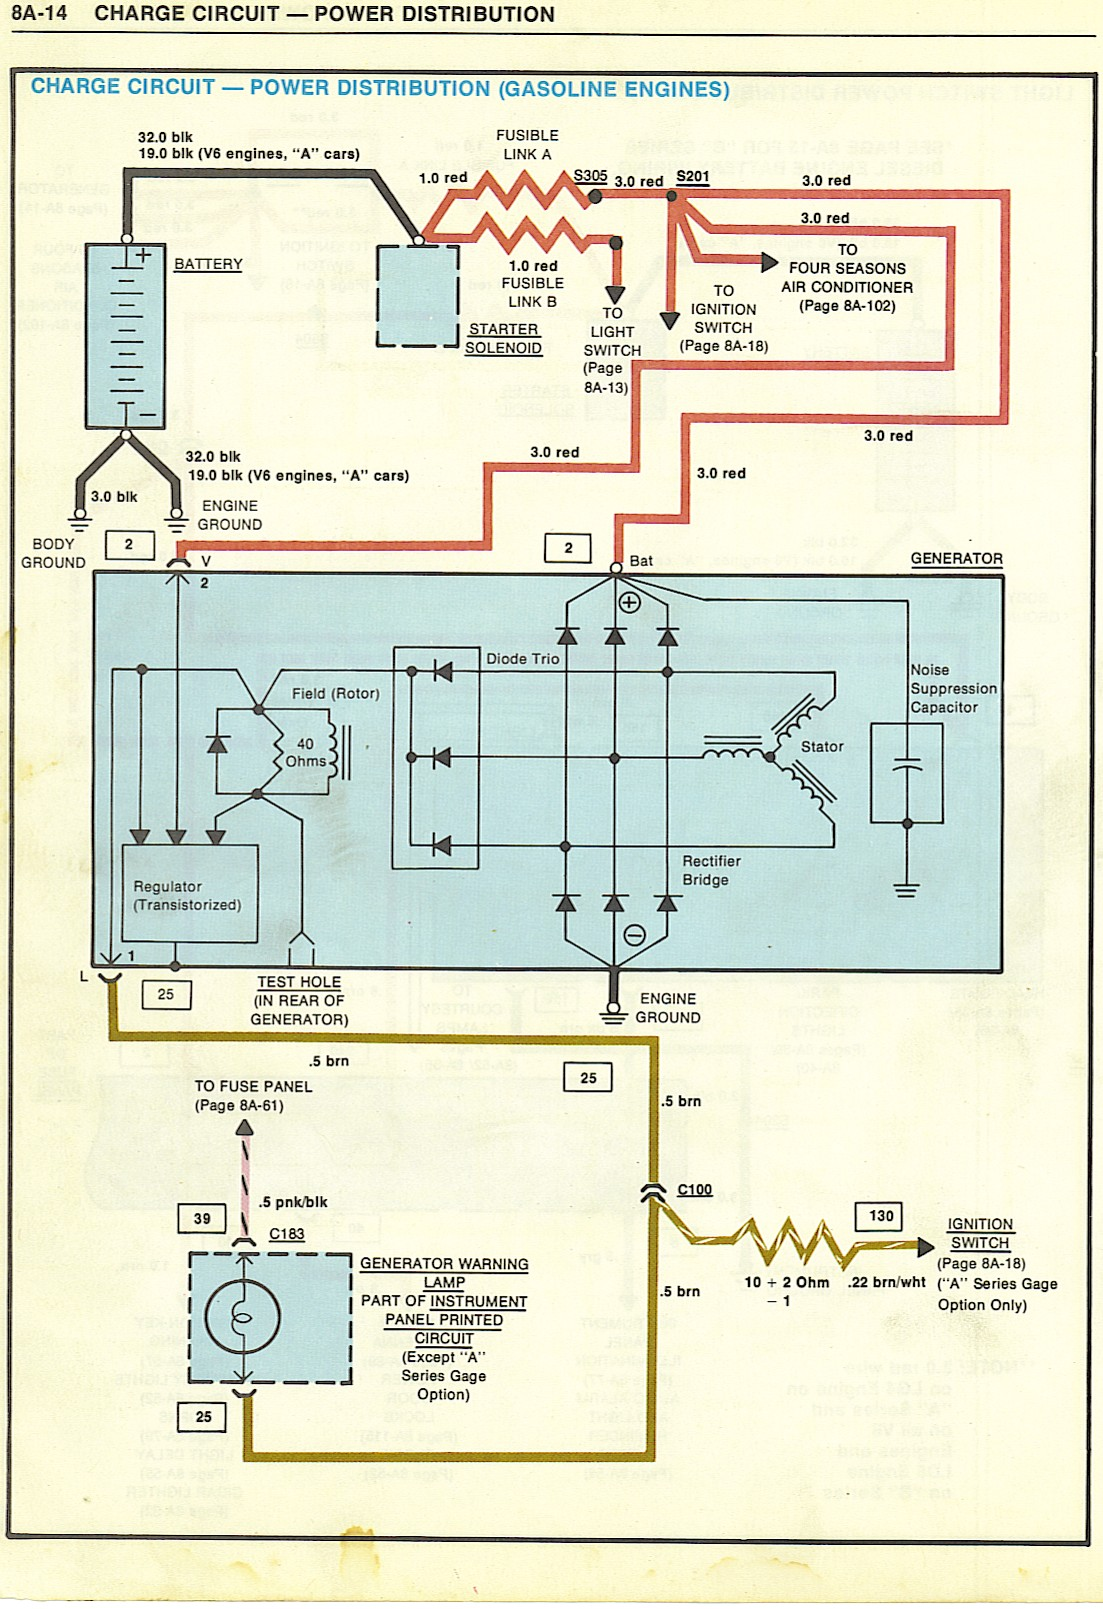 wiring diagrams 2001 monte carlo stereo wiring diagram wiring diagram for 2001 monte carlo amp